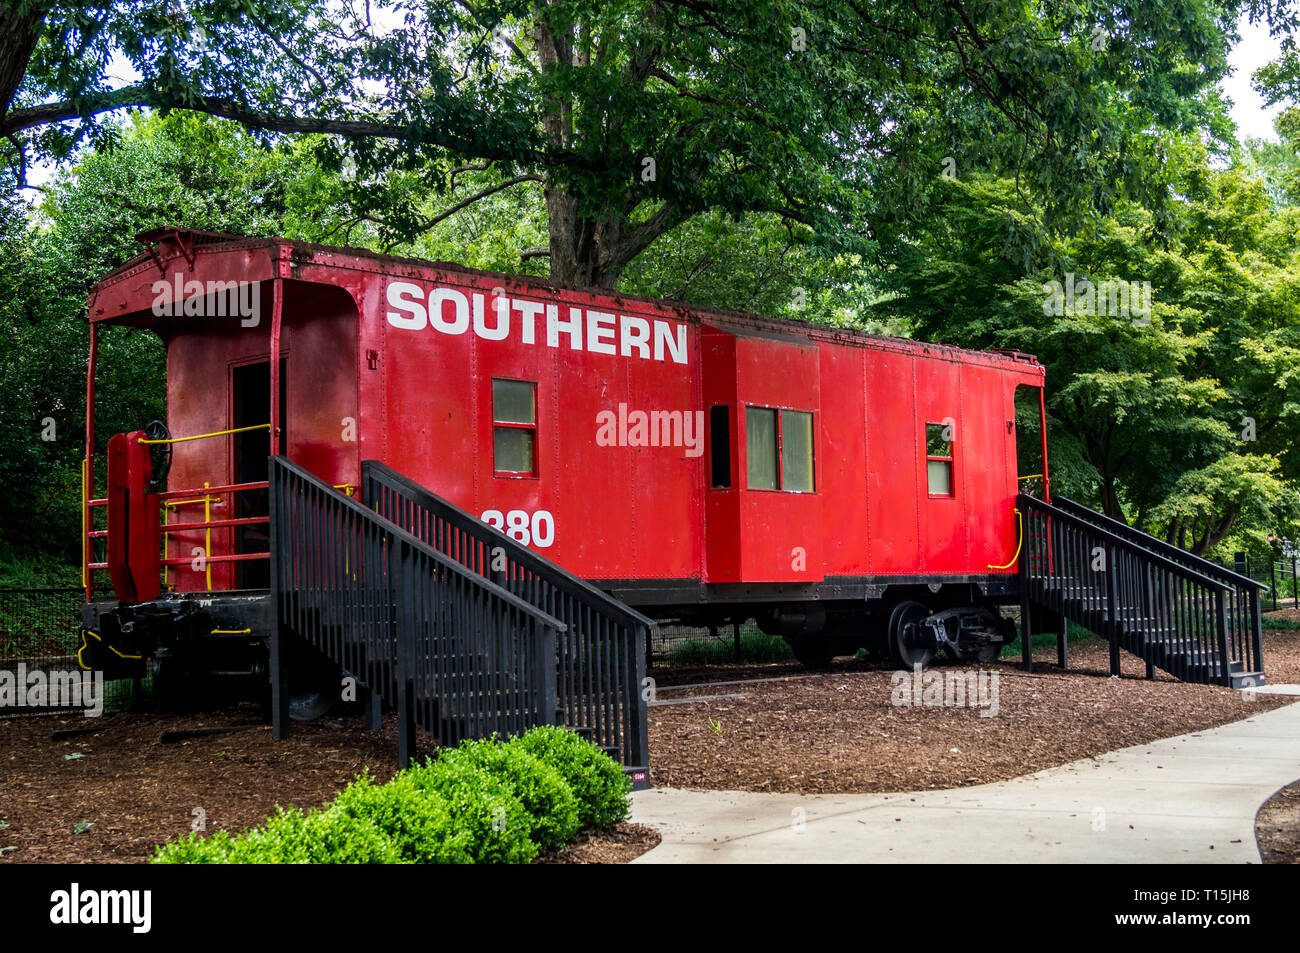 Old caboose at Pullen Park in Raleigh, NC - Stock Image